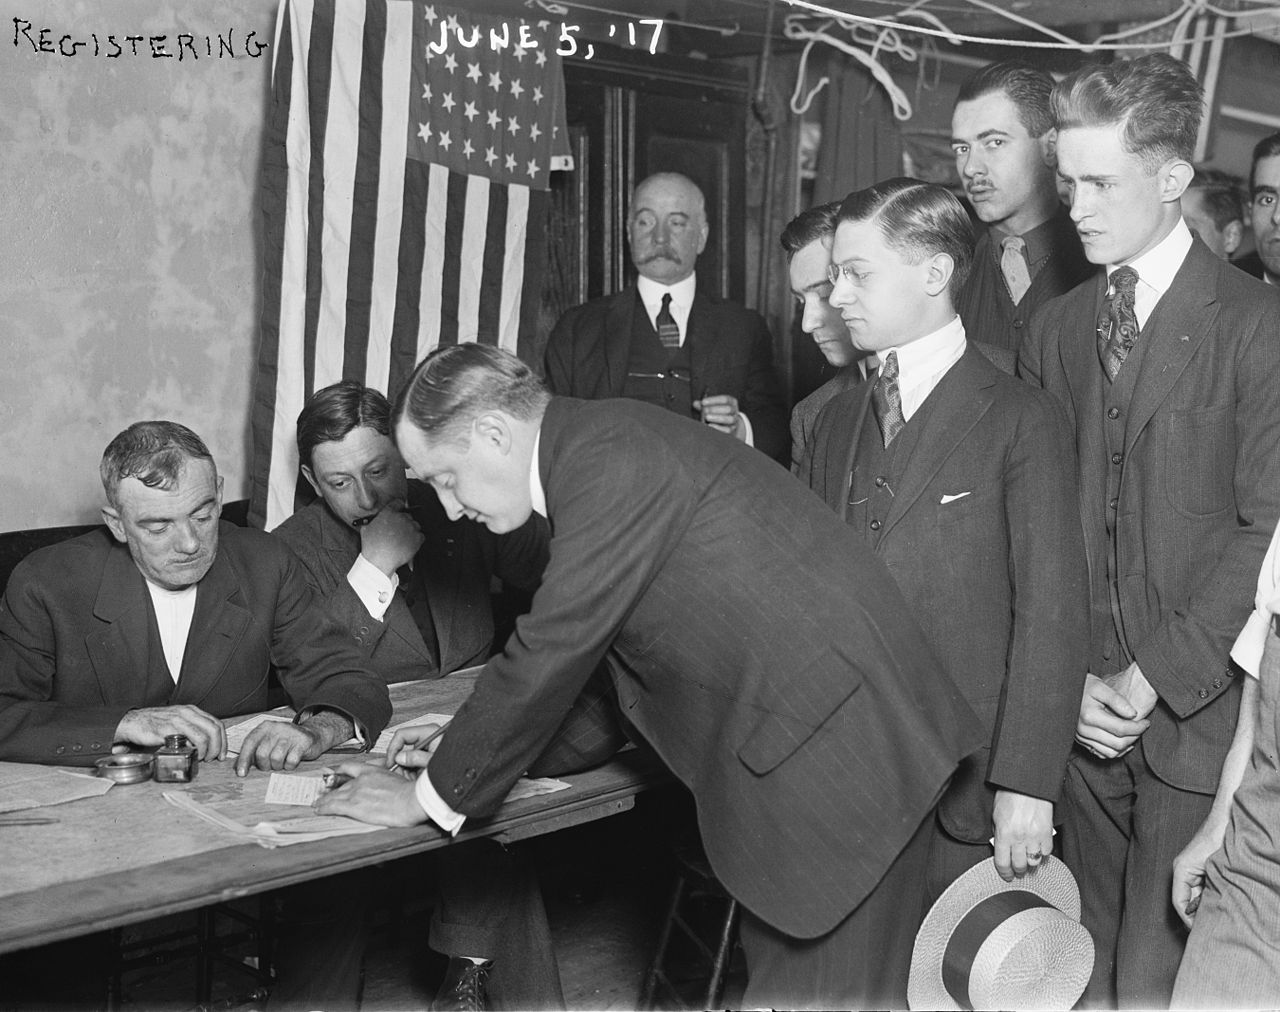 young_men_registering_for_military_conscription_new_york_city_june_5_1917